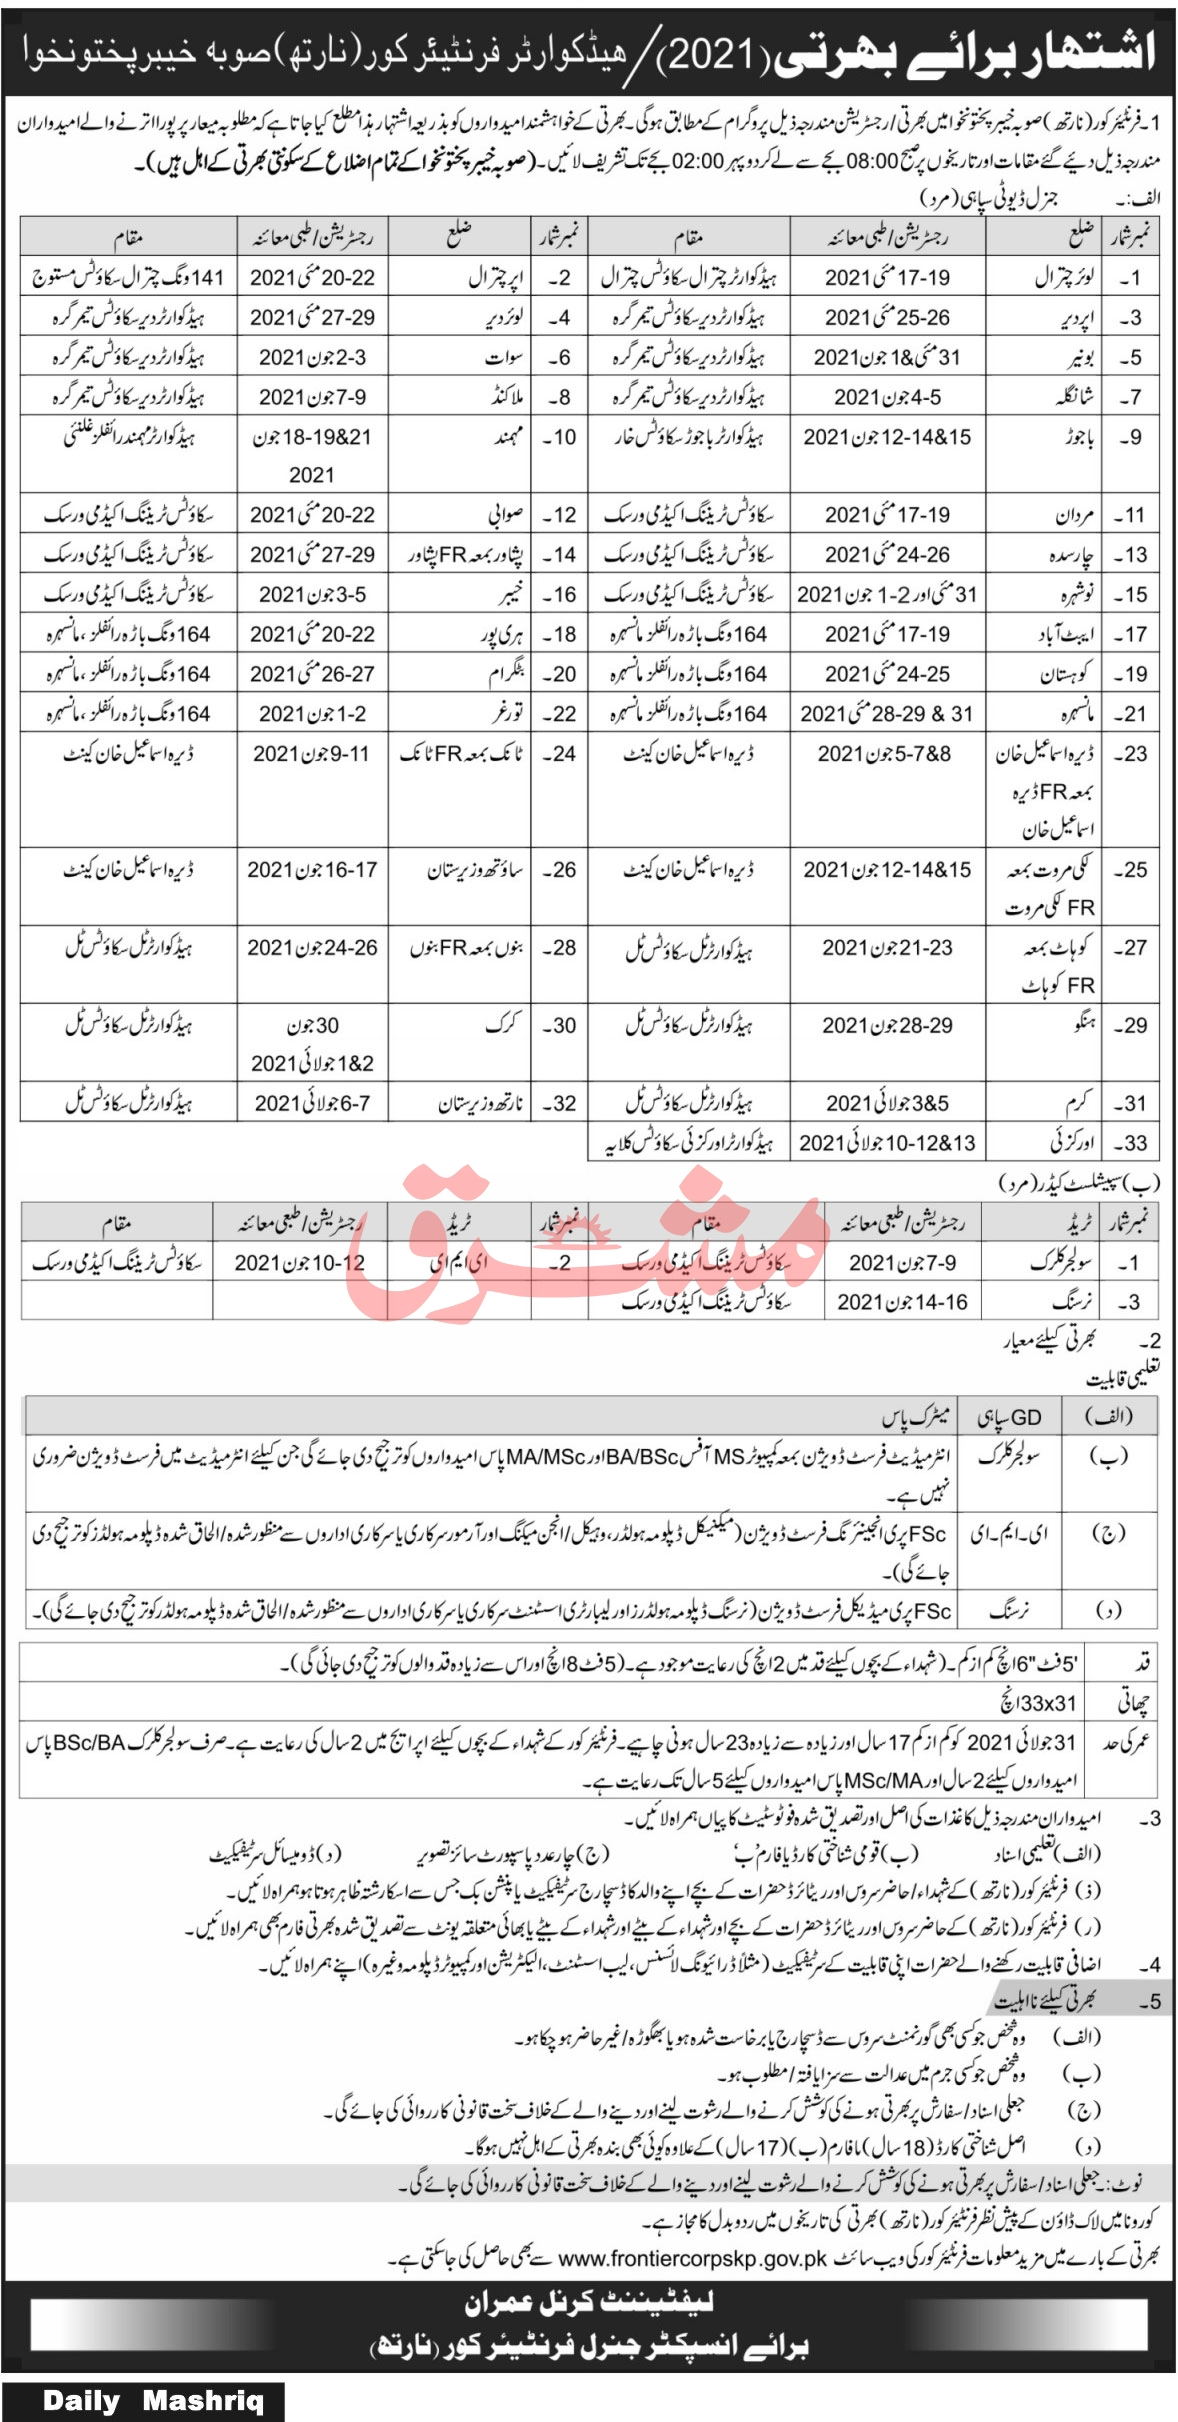 This page is about Headquarter Frontier Corps (North) Jobs May 2021 (300 Posts) Latest Advertisment. Headquarter Frontier Corps (North) invites applications for the posts announced on a contact / permanent basis from suitable candidates for the following positions such as General Duty Sepoy (Male), Soldier Clerk (Male), EME (Male), Nursing. These vacancies are published in Mashriq Newspaper, one of the best News paper of Pakistan. This advertisement has pulibhsed on 05 May 2021 and Last Date to apply is 17 May 2021.